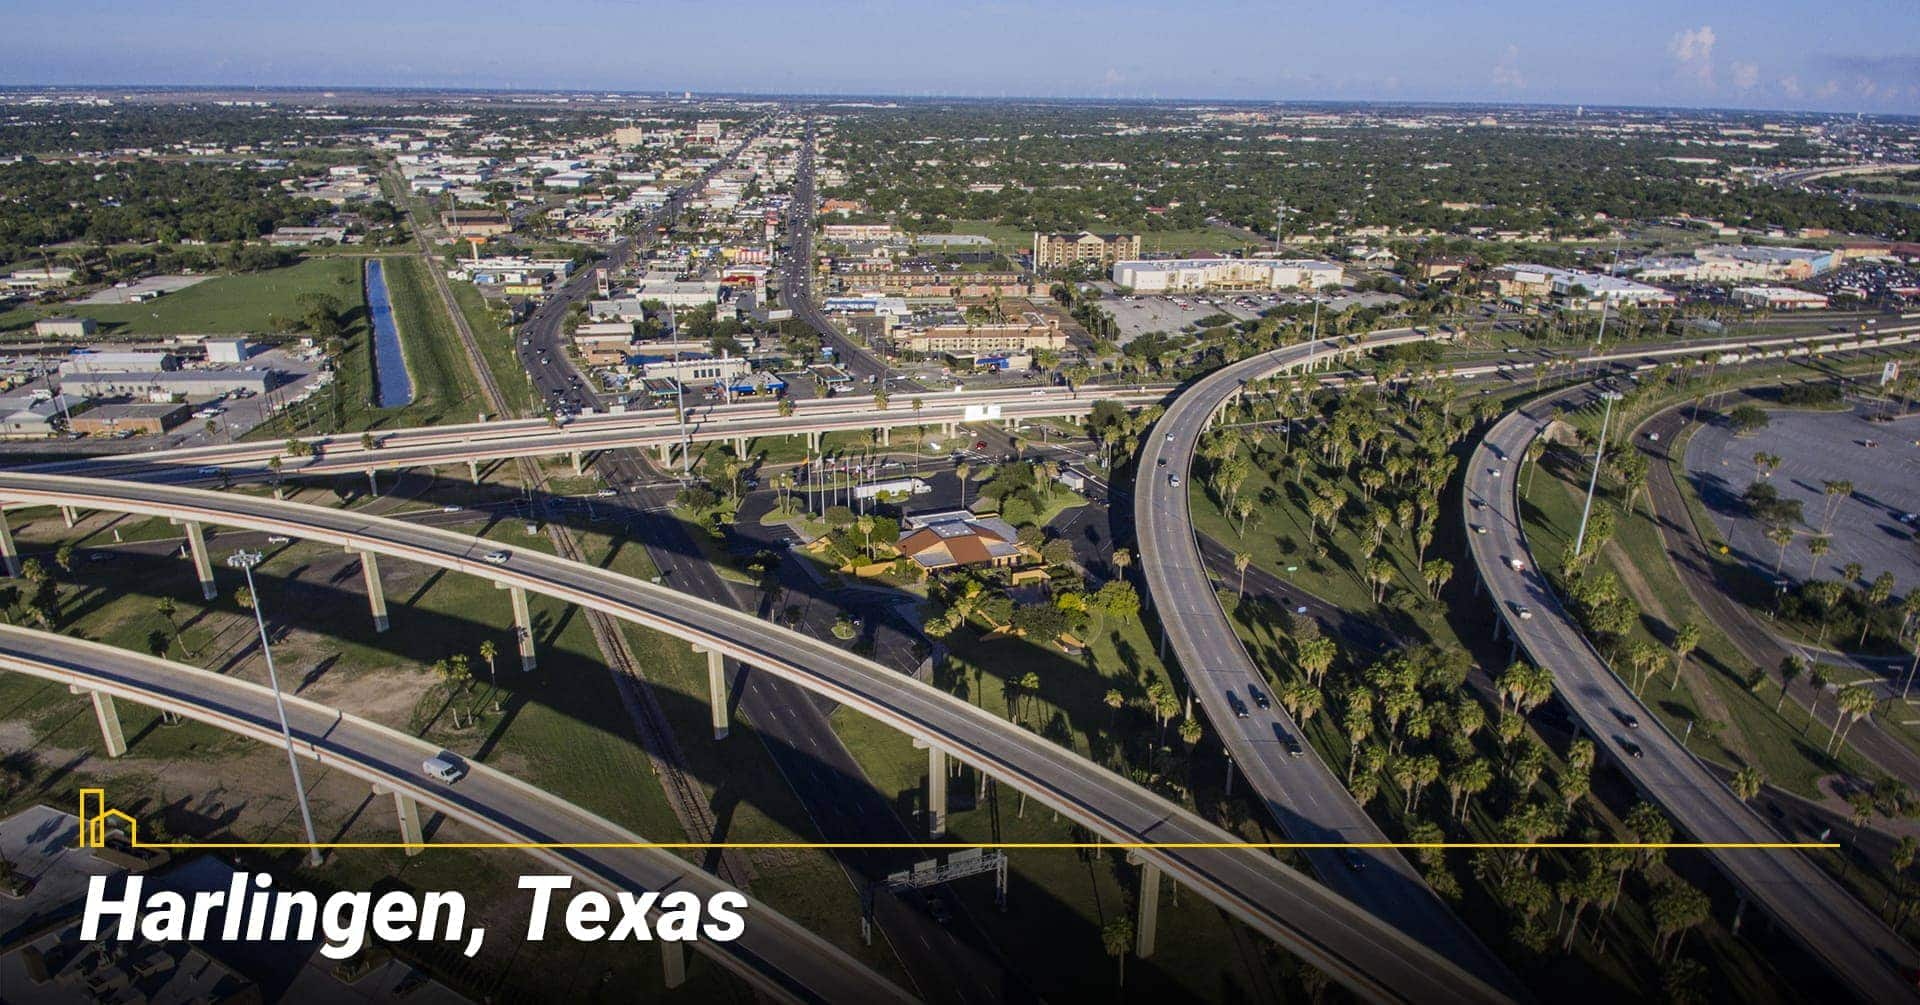 Harlingen, Texas an affordable city to retire